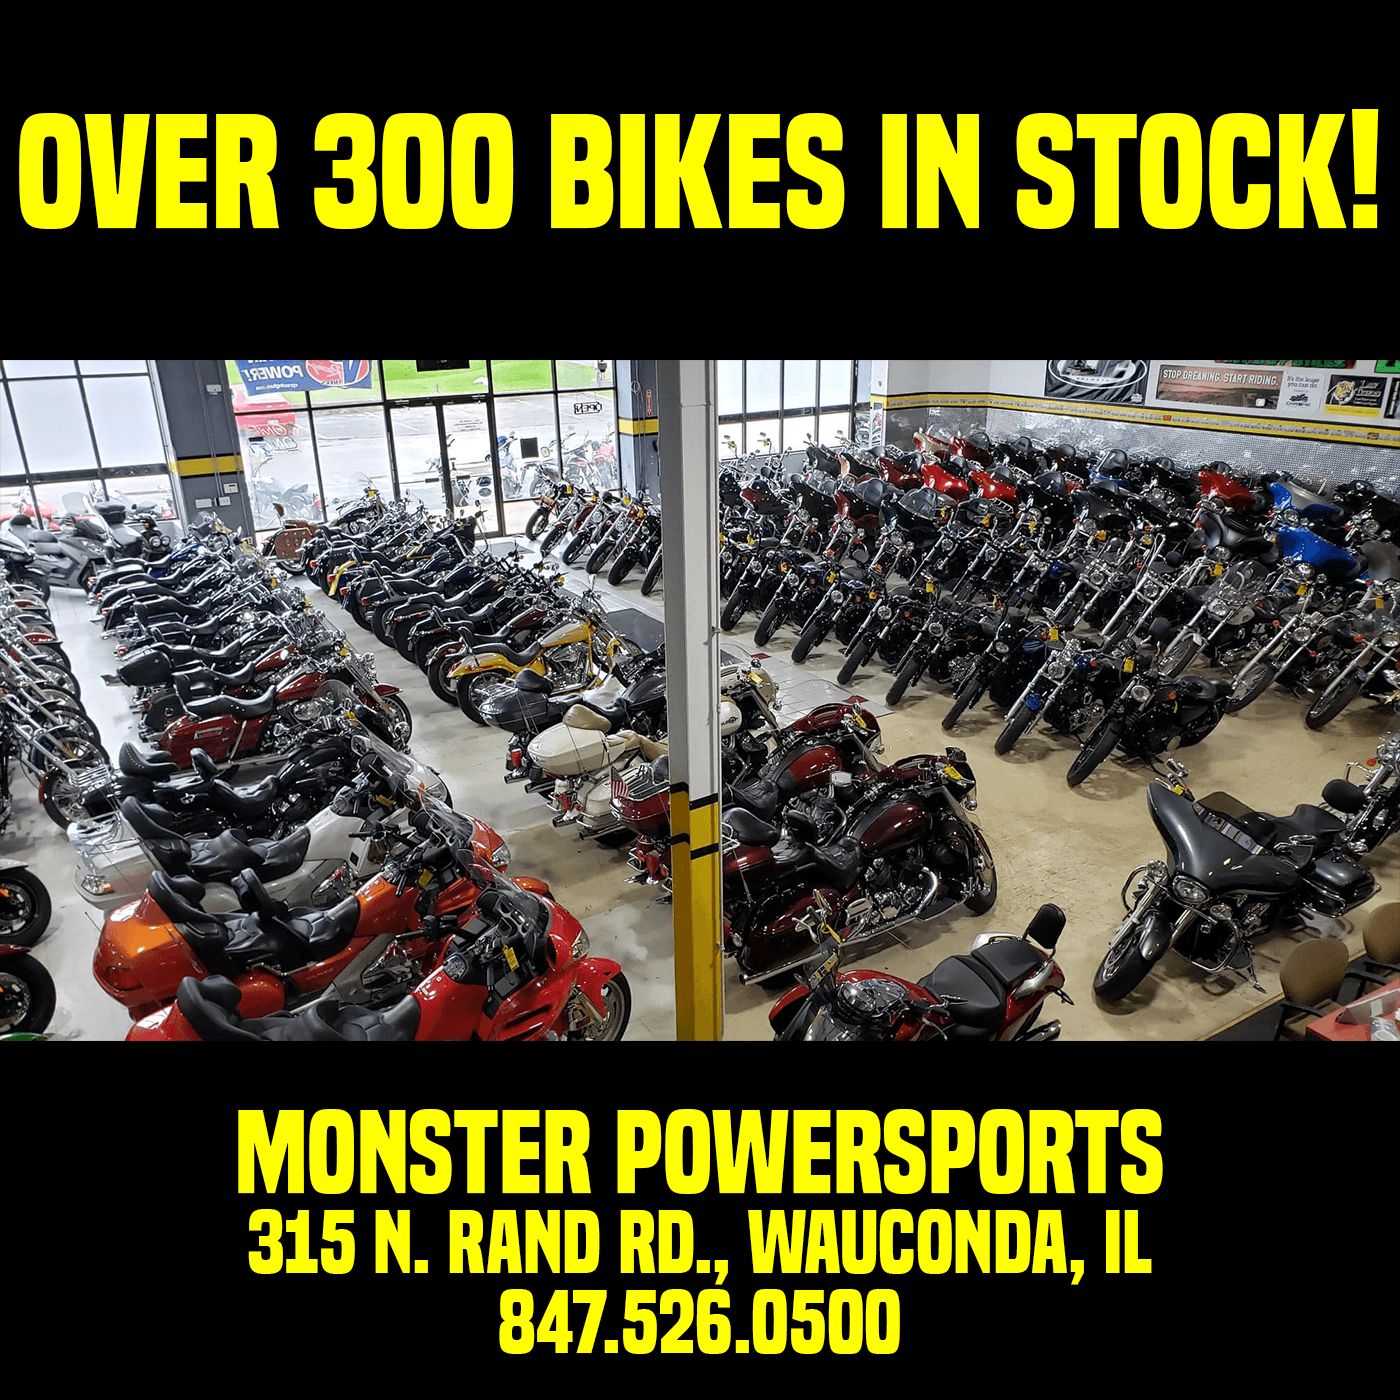 Over 300 Bikes in Stock at Monster Powersports